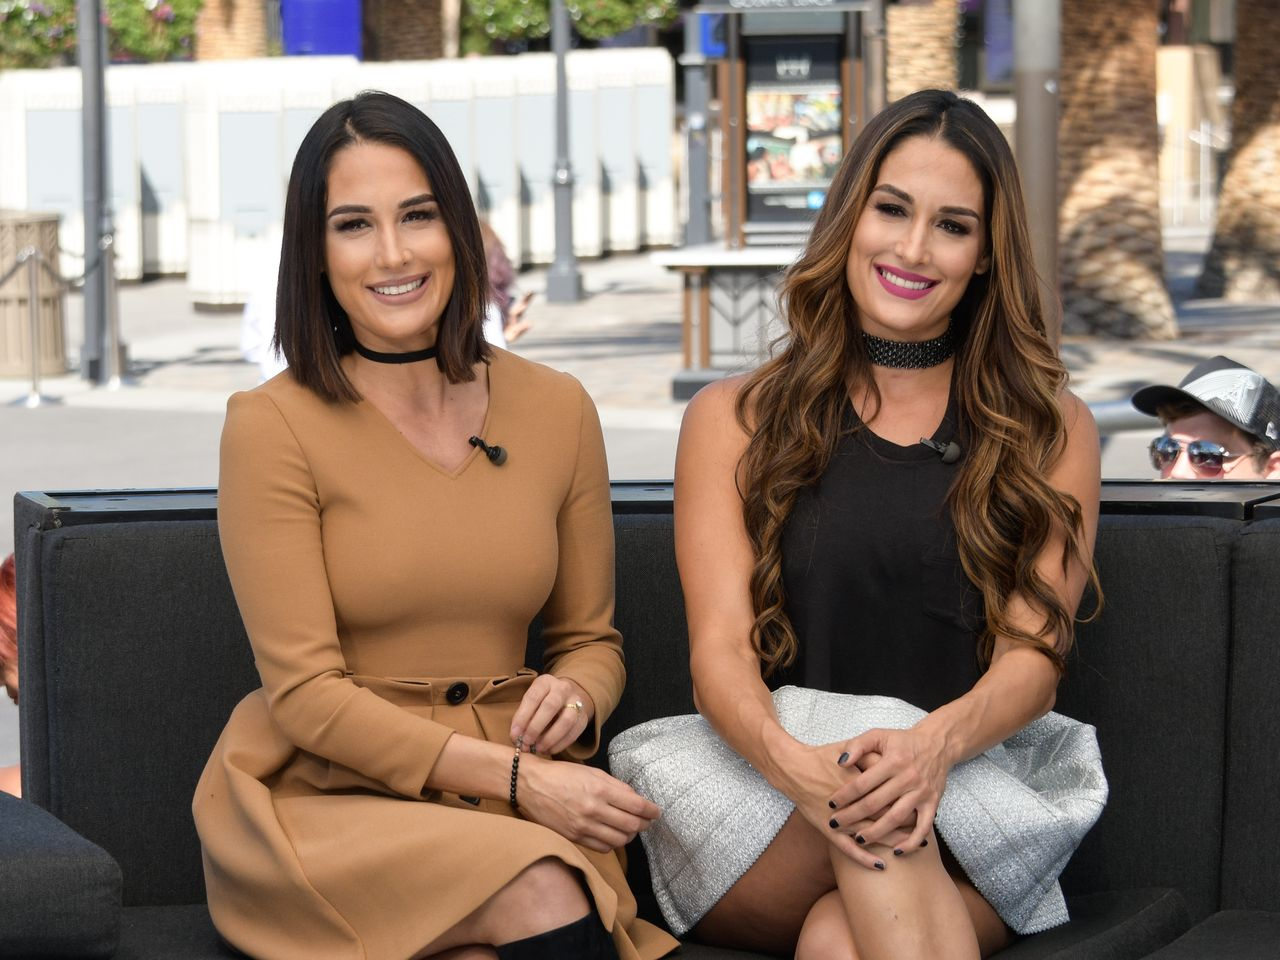 """Nikki and Brie Bella during their visit to """"Extra"""" at Universal Studios Hollywood on October 3, 2016 in Universal City, California. 